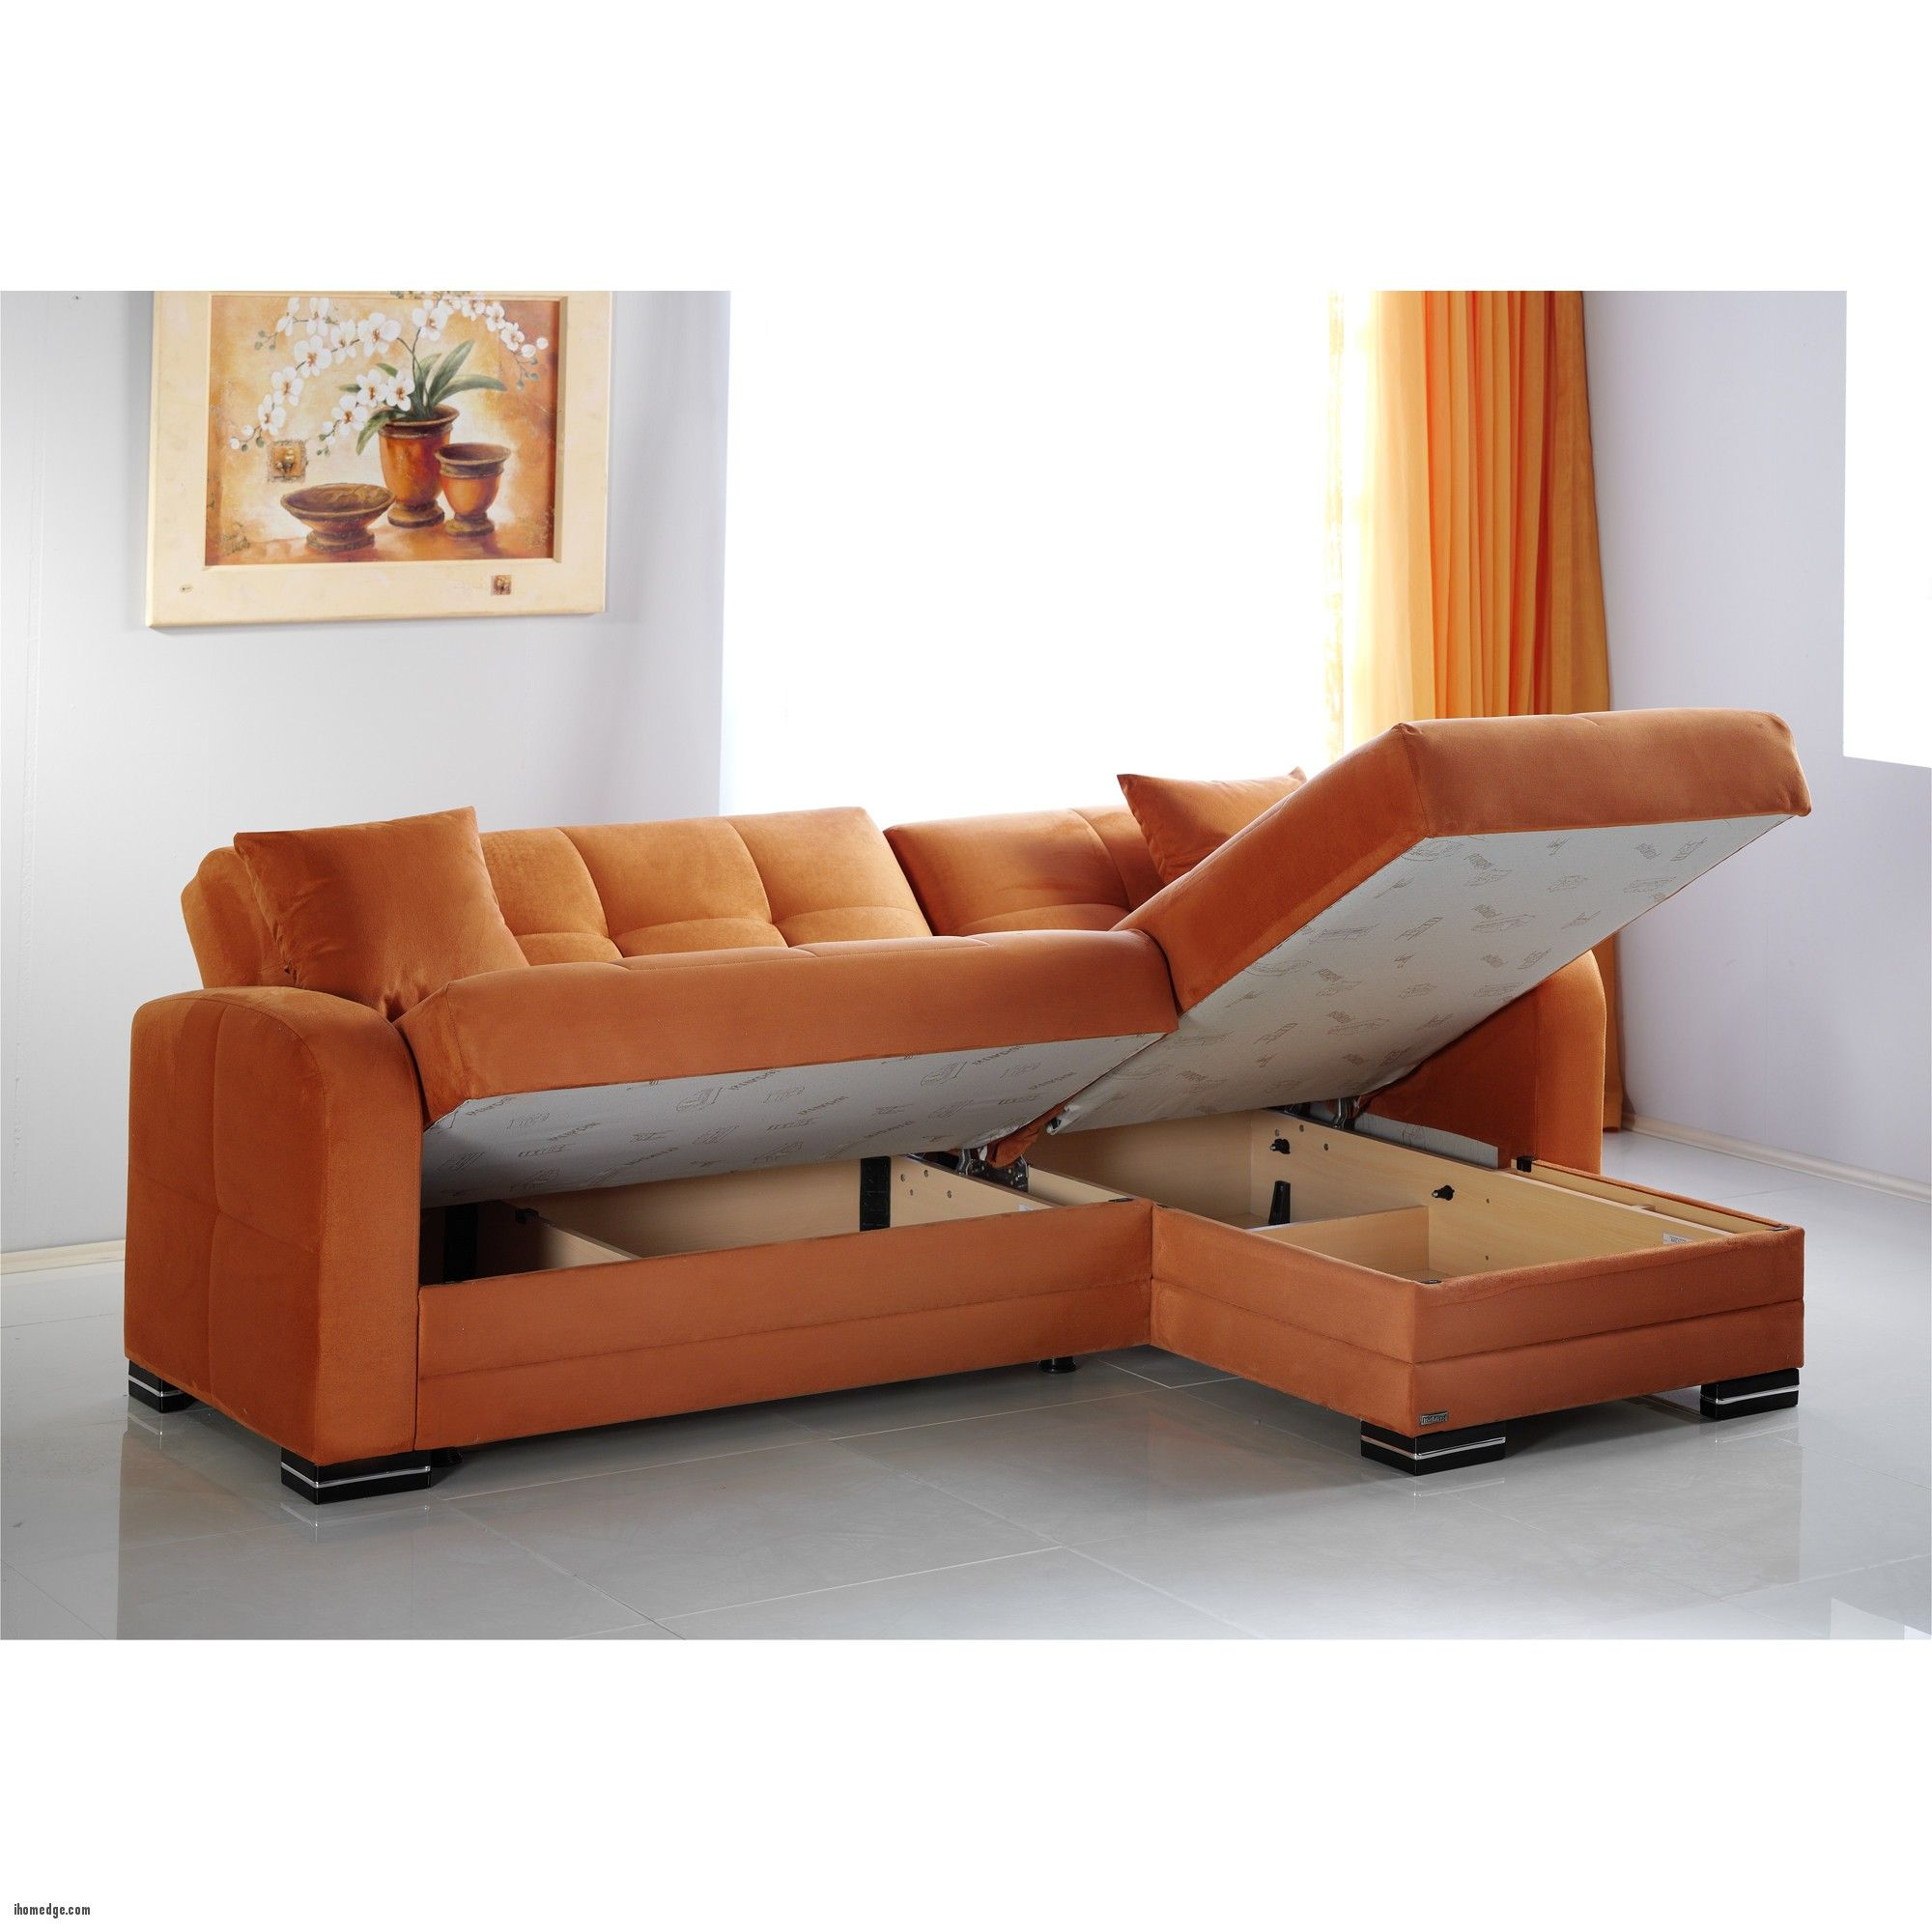 Recliner Sofa awesome Unique Sectional sofa Bed Istikbal Kubo Reversible Chaise Sectional g http